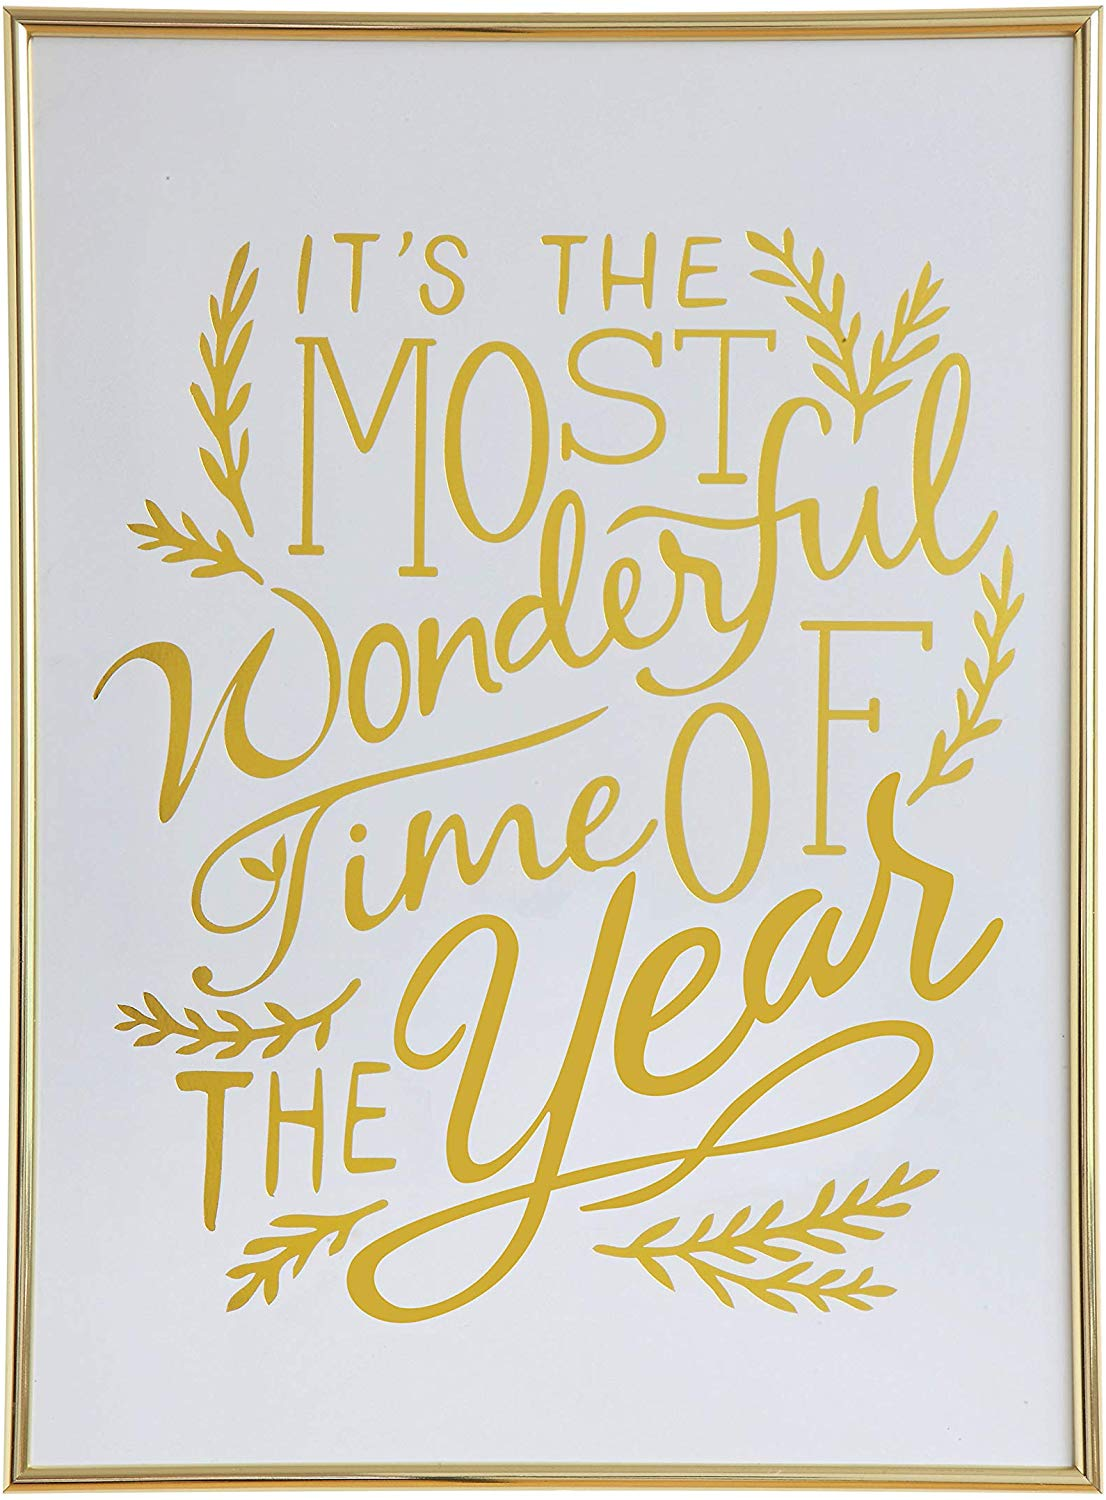 The Most Wonderful Time of Year Print